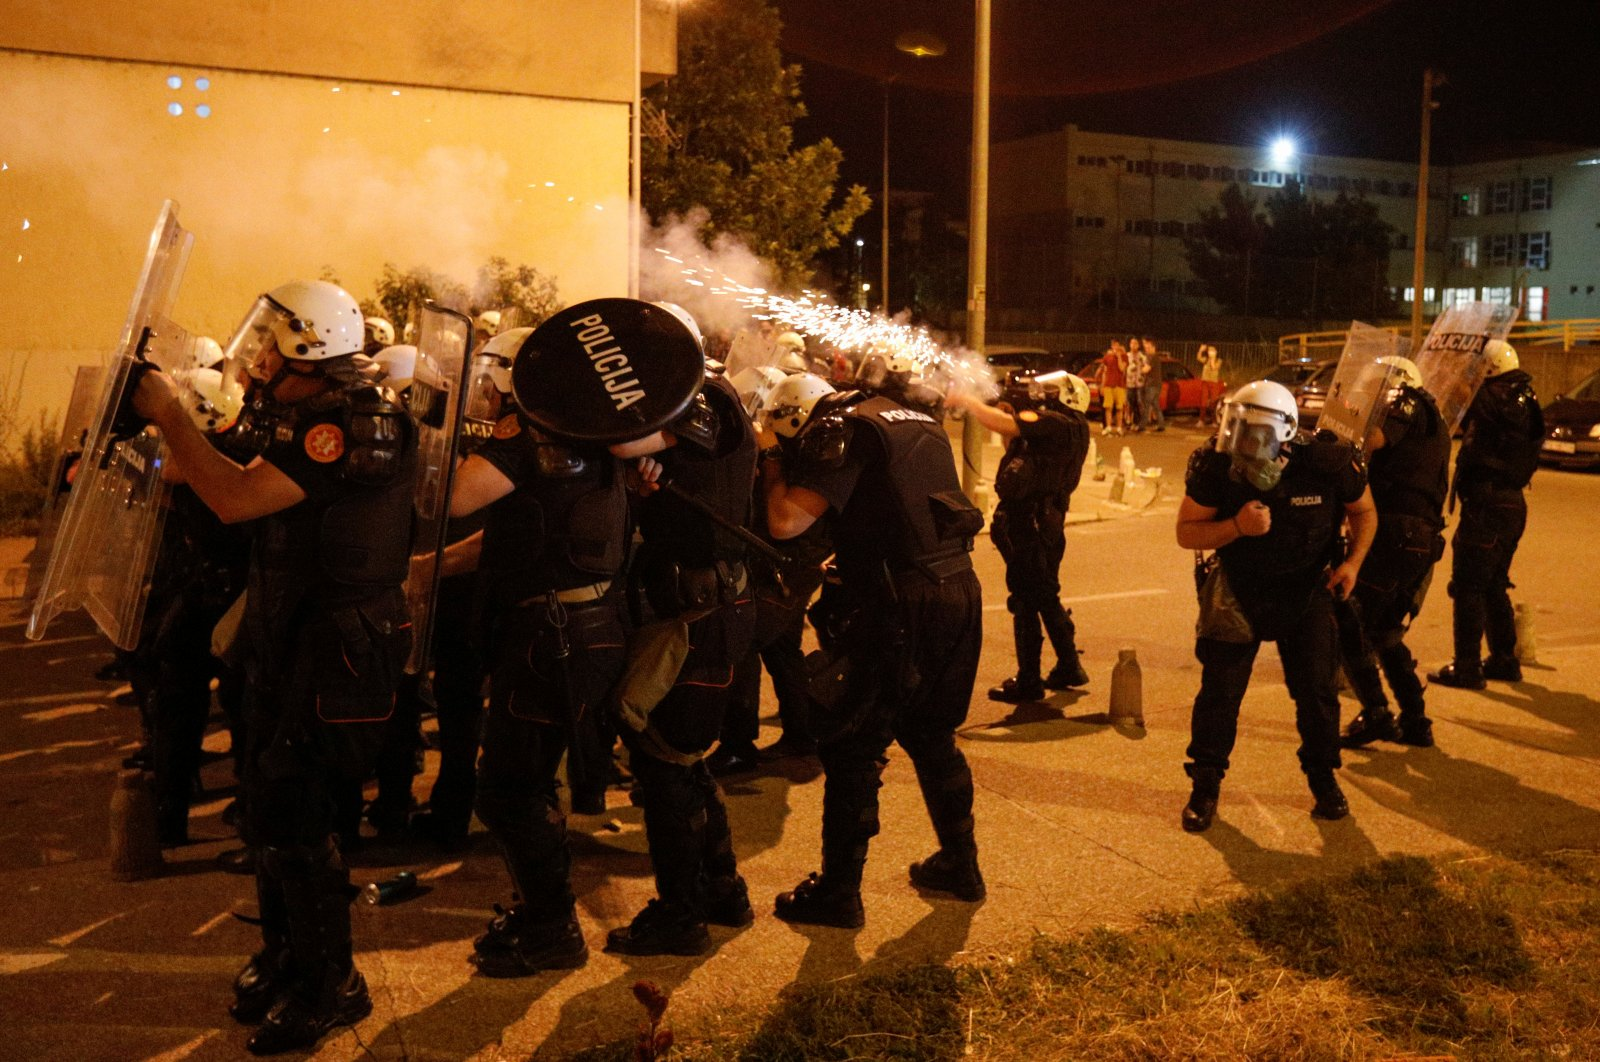 Riot police fire tear gas in front of a police station in Podgorica, Montenegro, June 24, 2020. (Reuters Photo)